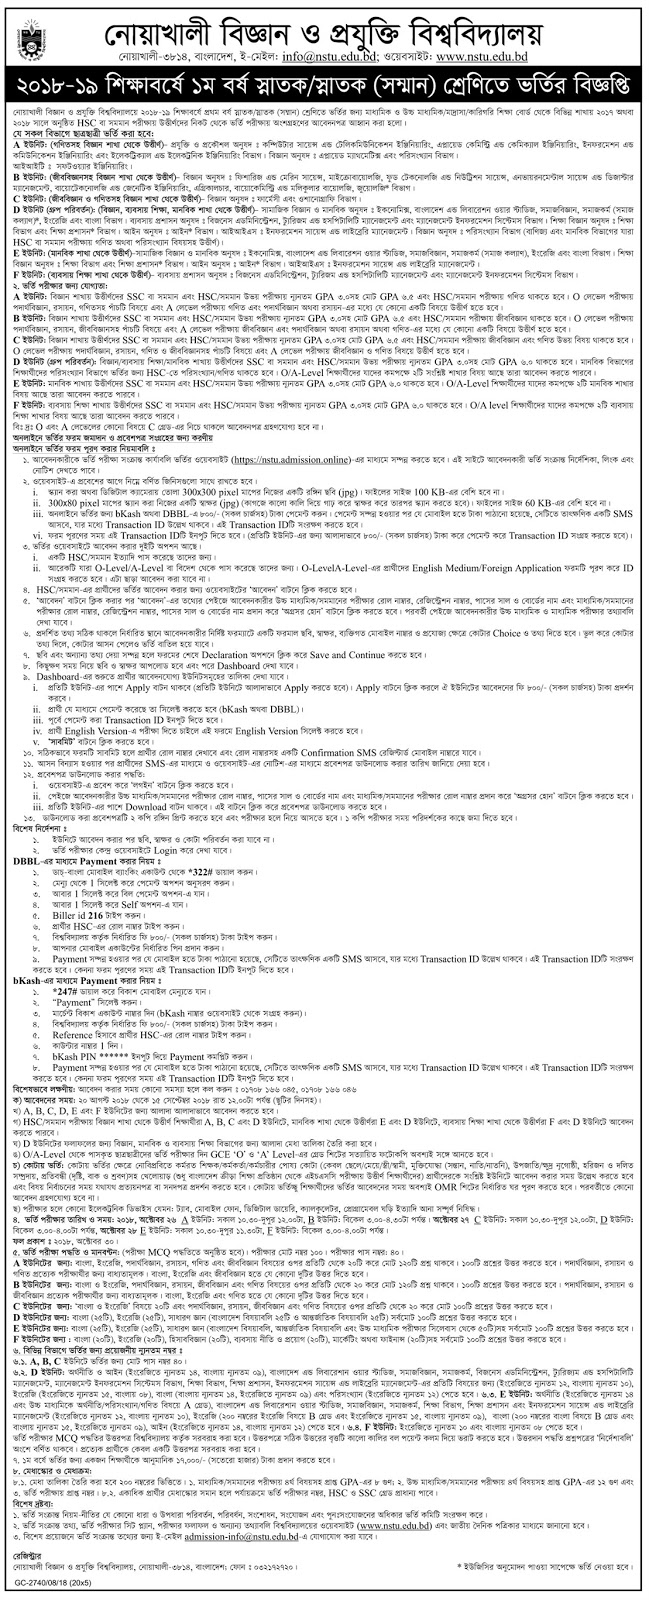 Noakhali Science and Technology University (NSTU) Admission Test Circular 2018-2019